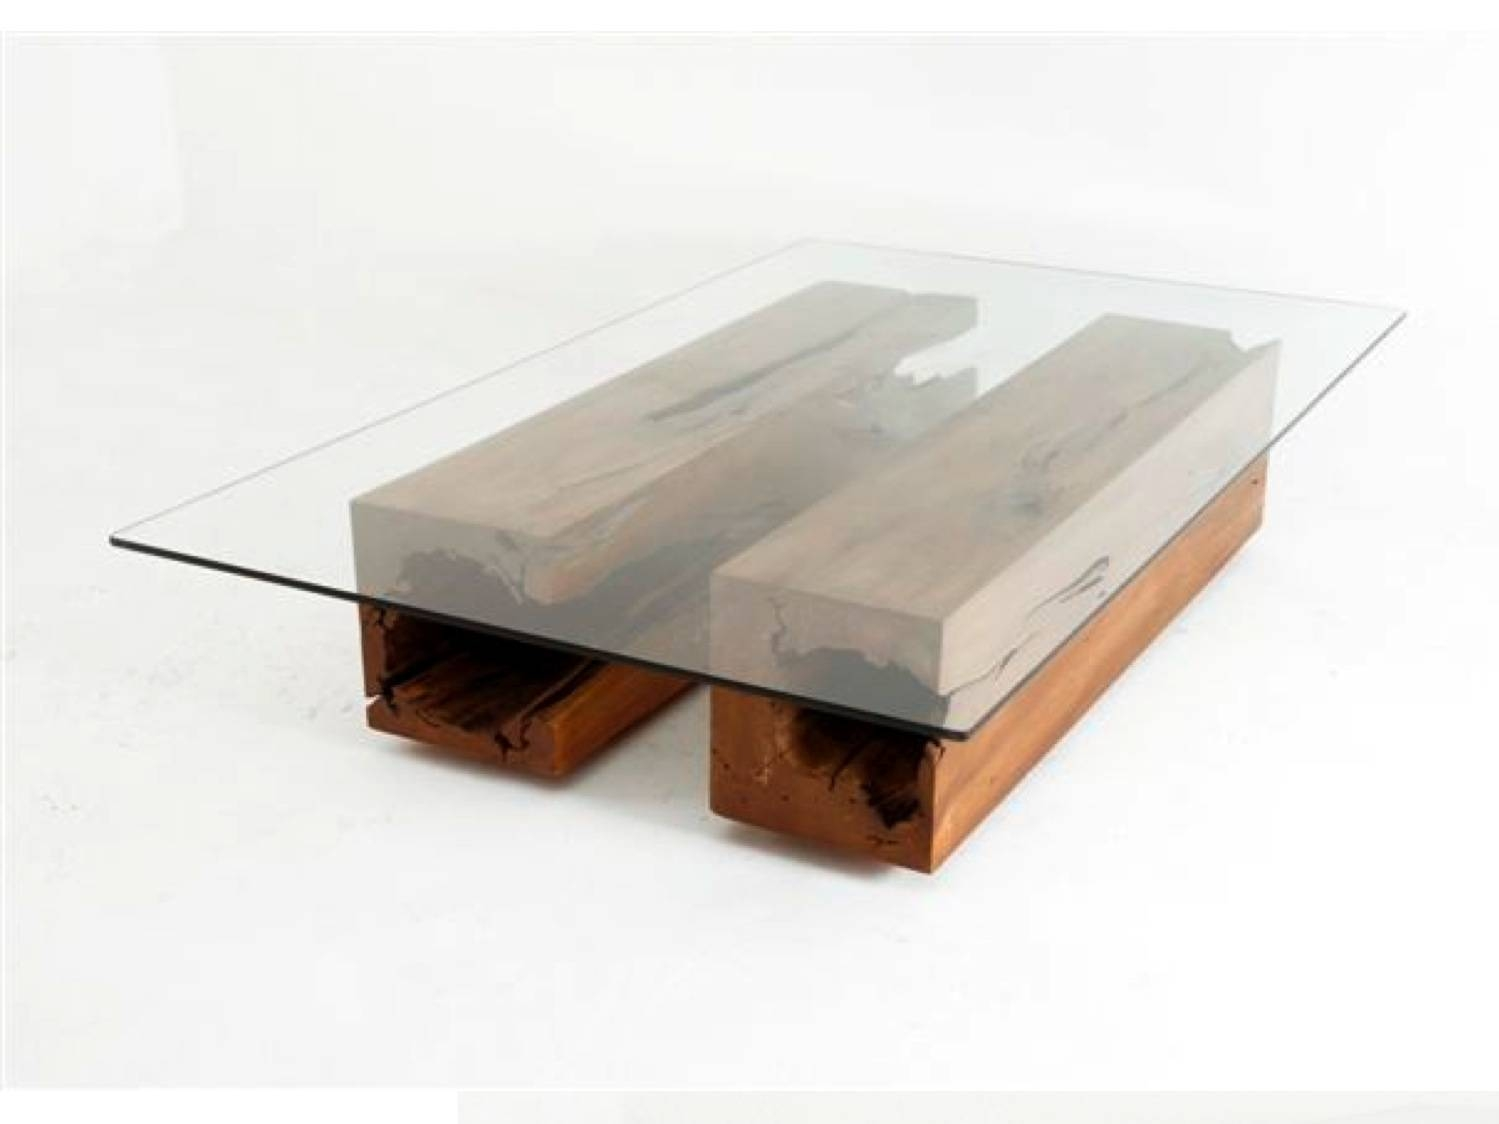 Unusual Coffee Tables with Unusual Coffee Tables (Image 14 of 15)